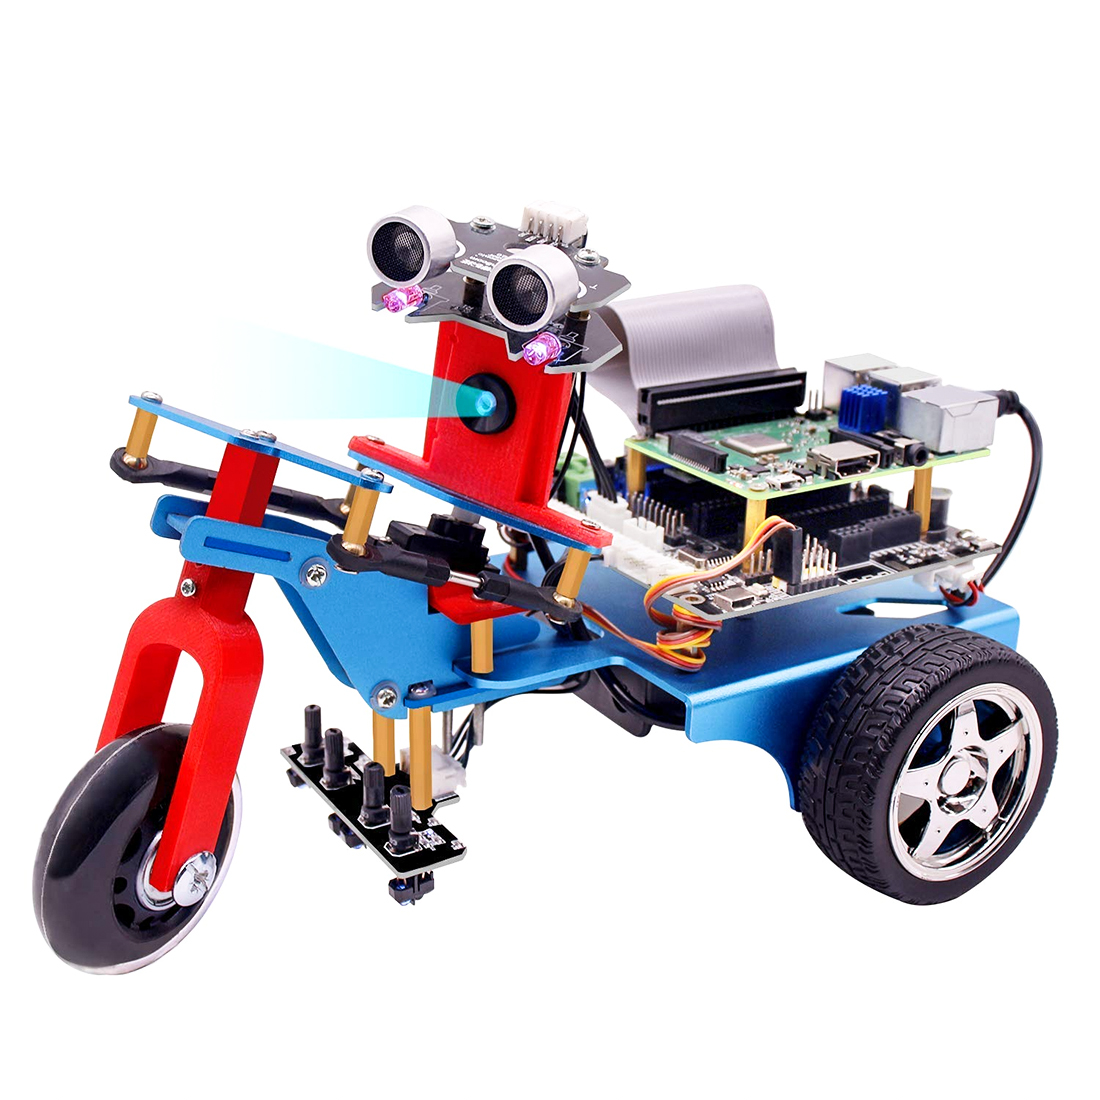 TrikeBot Smart Robot Car Kit Programmable Learning With HD Camera DIY Robot Kit With Raspberry 4B ( 1G/2G/4G Memory )